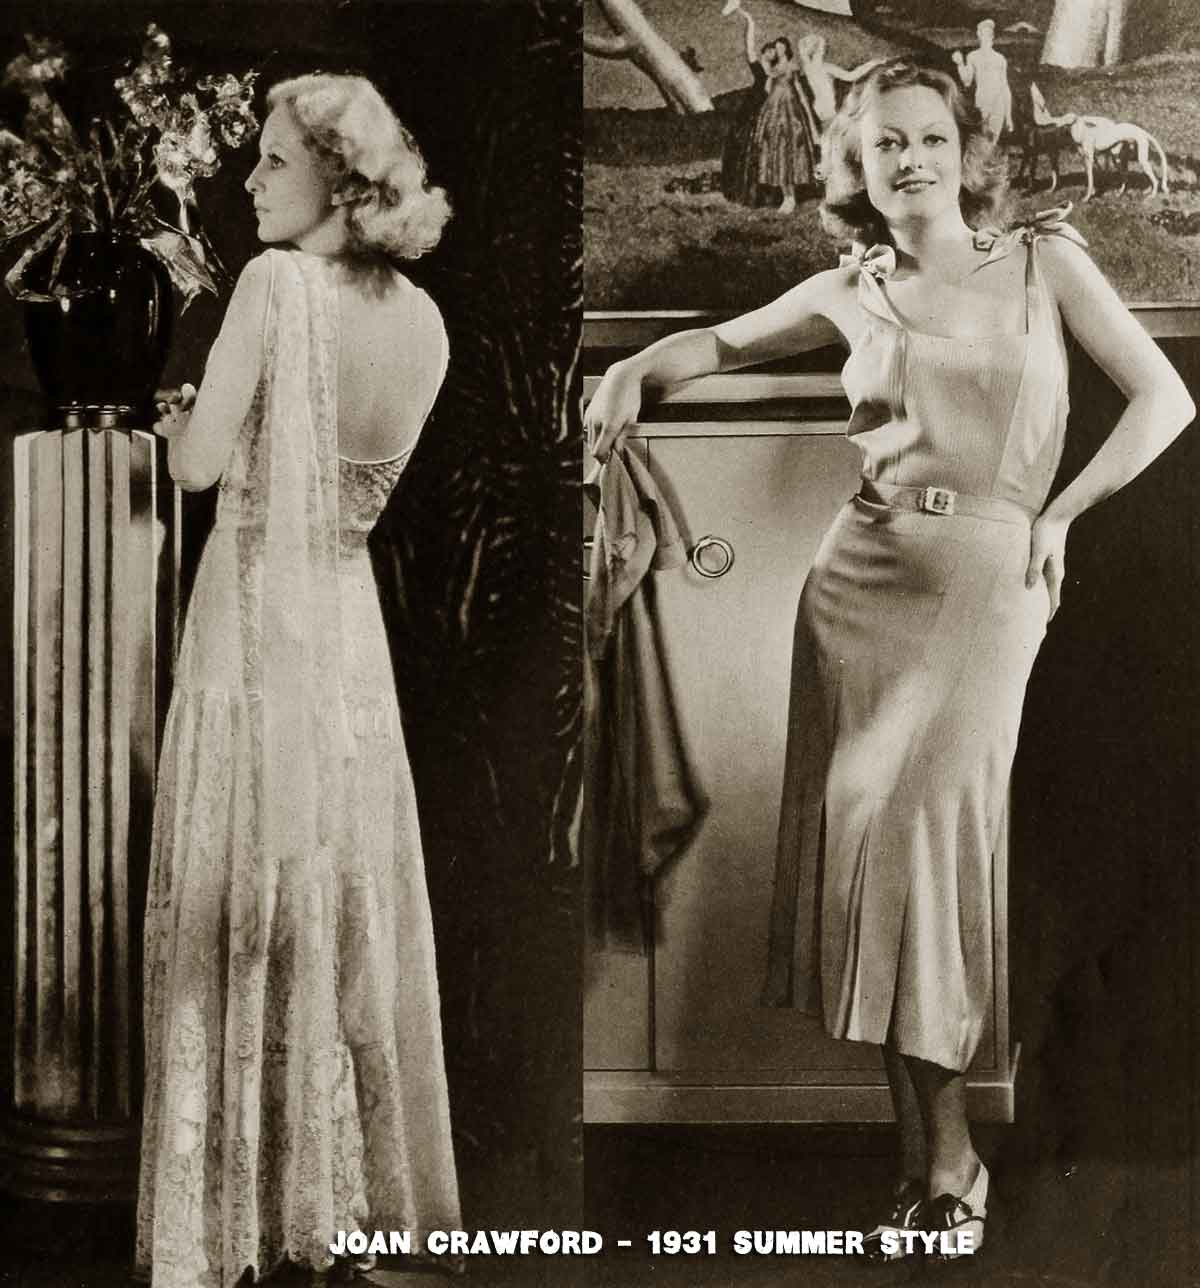 Two summer gowns by Joan Crawford in 1931